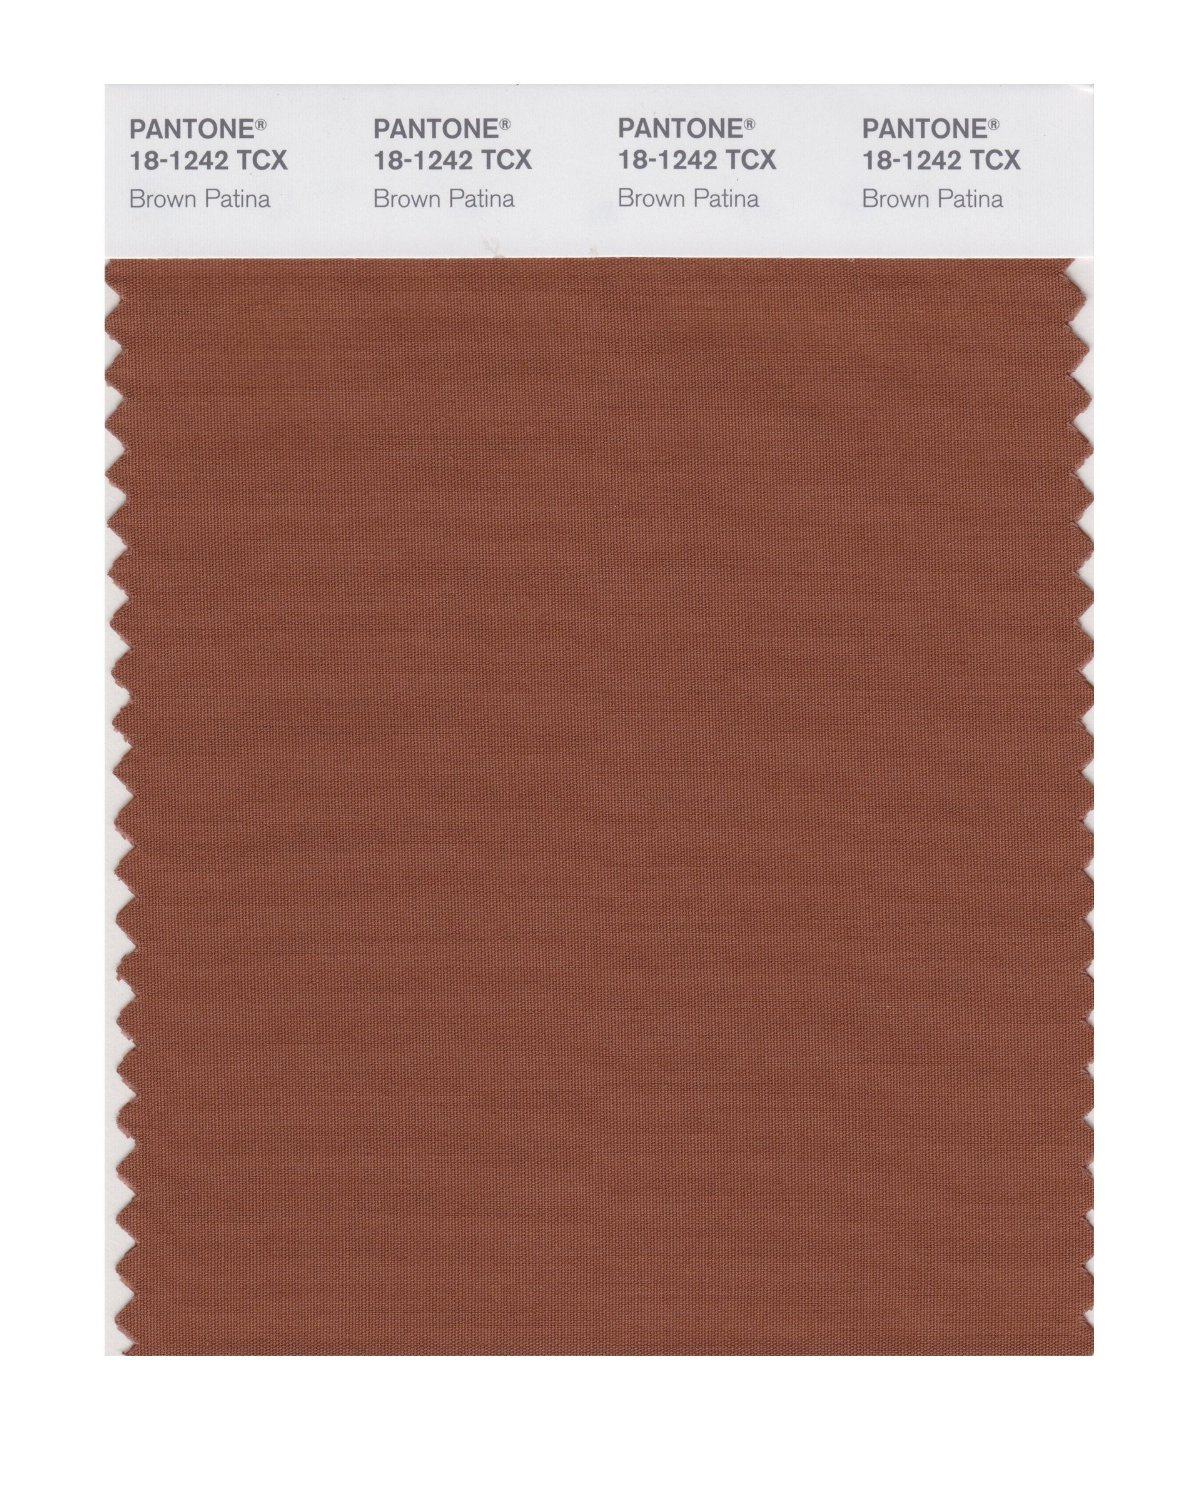 Pantone Smart Swatch 18-1242 Brown Patina